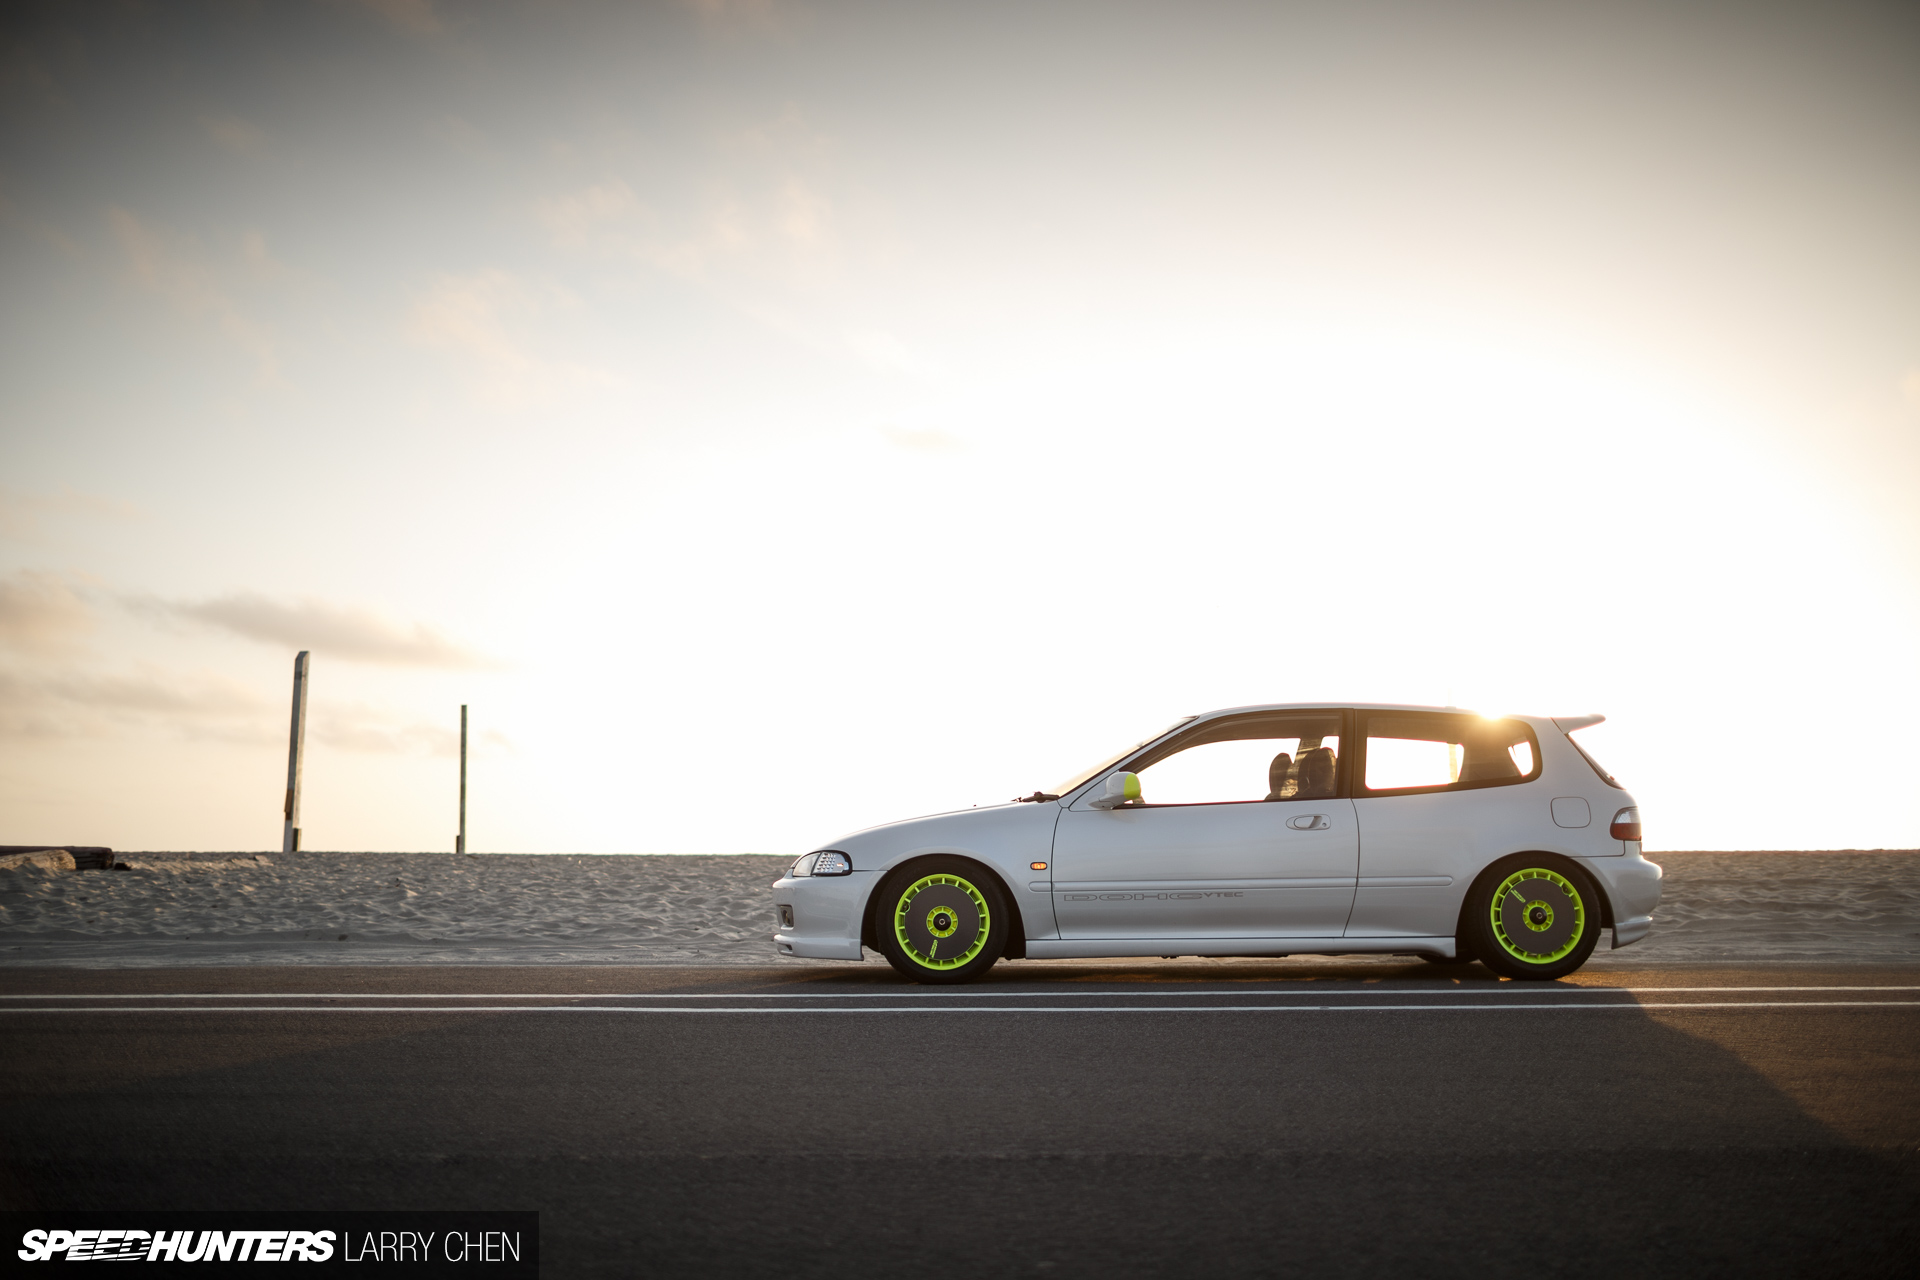 The Guy Who Restored A Civic Speedhunters